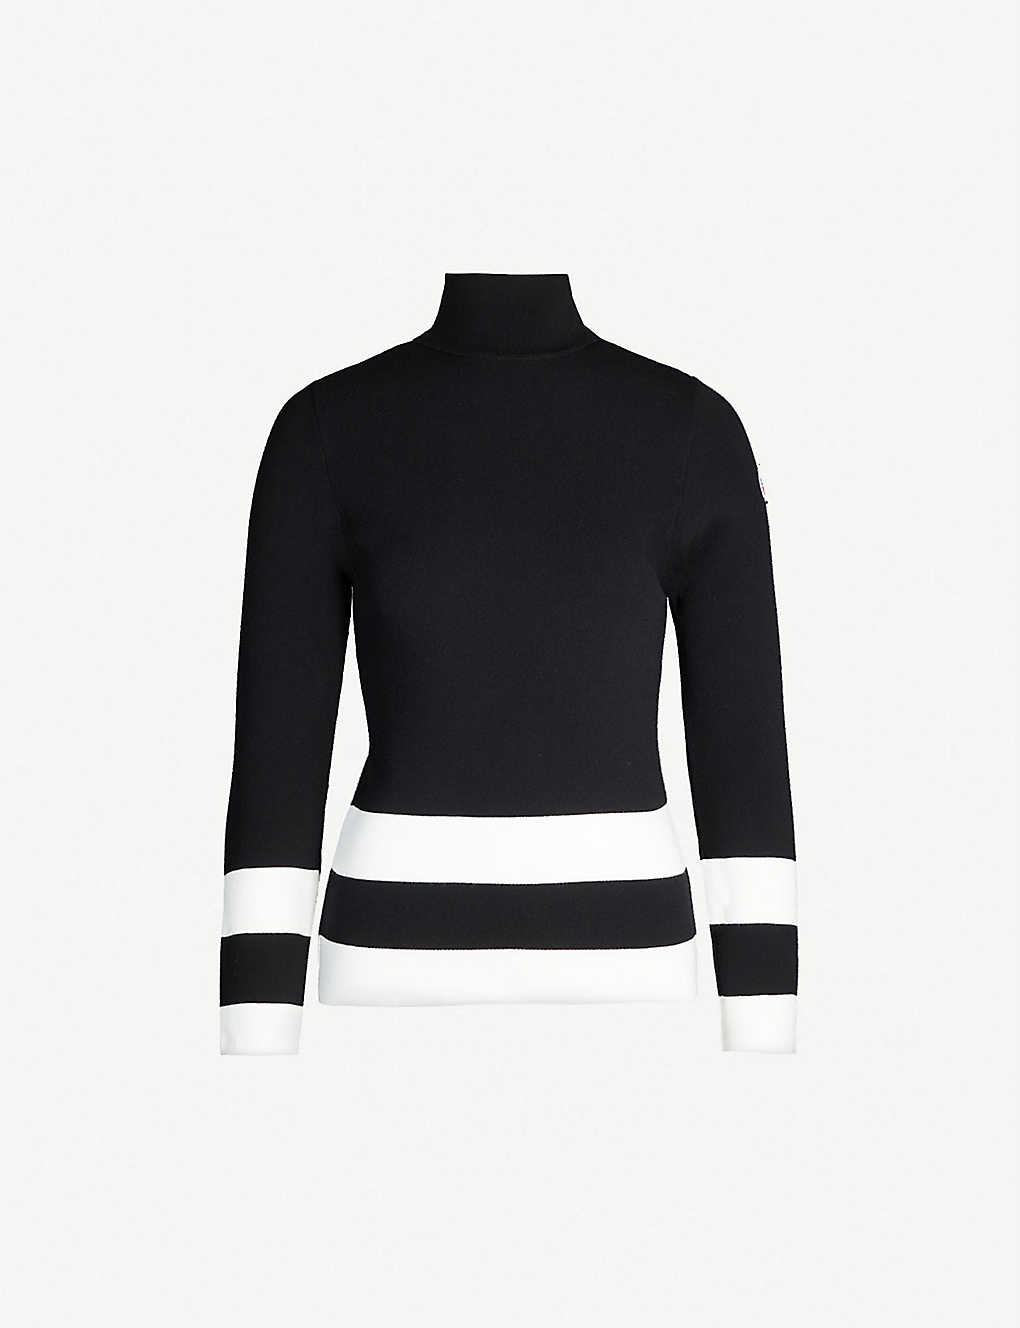 FUSALP: Ubac turtleneck knitted jumper